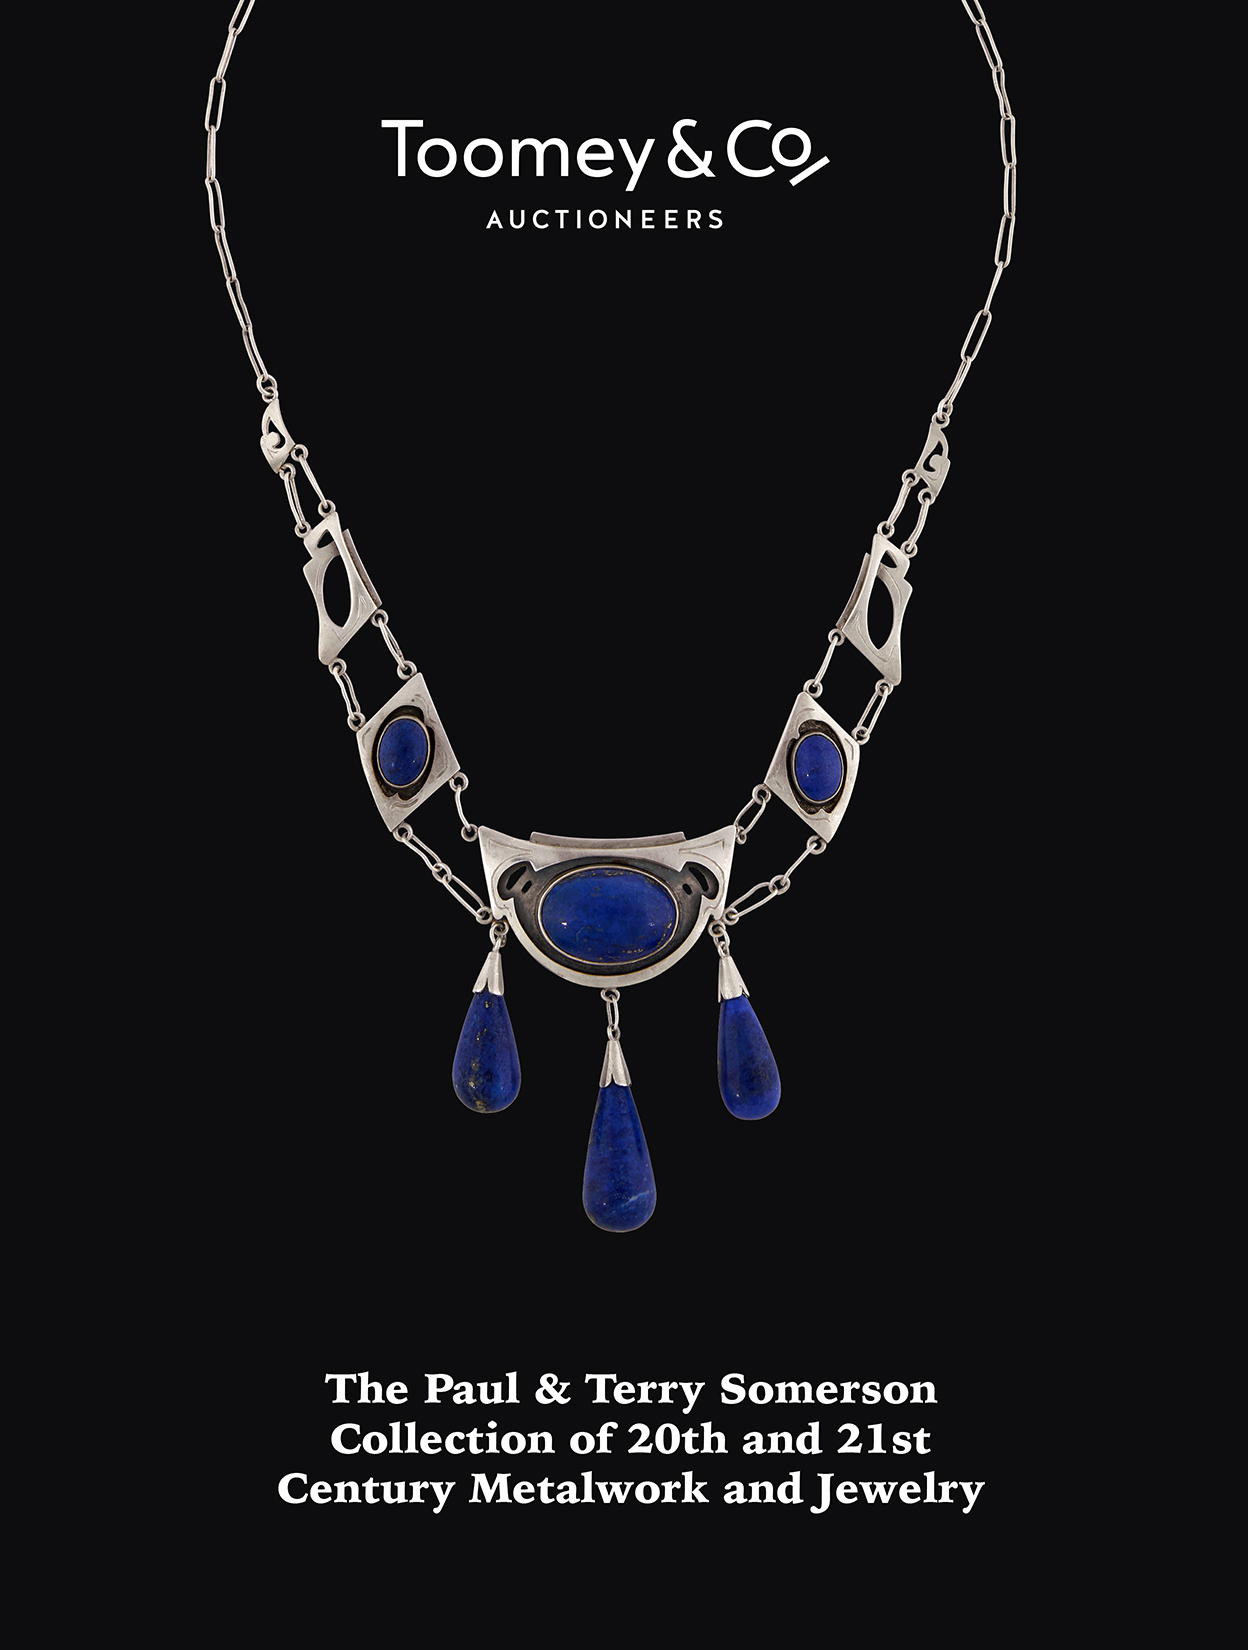 The Paul & Terry Somerson Collection of 20th and 21st Century Metalwork and Jewelry